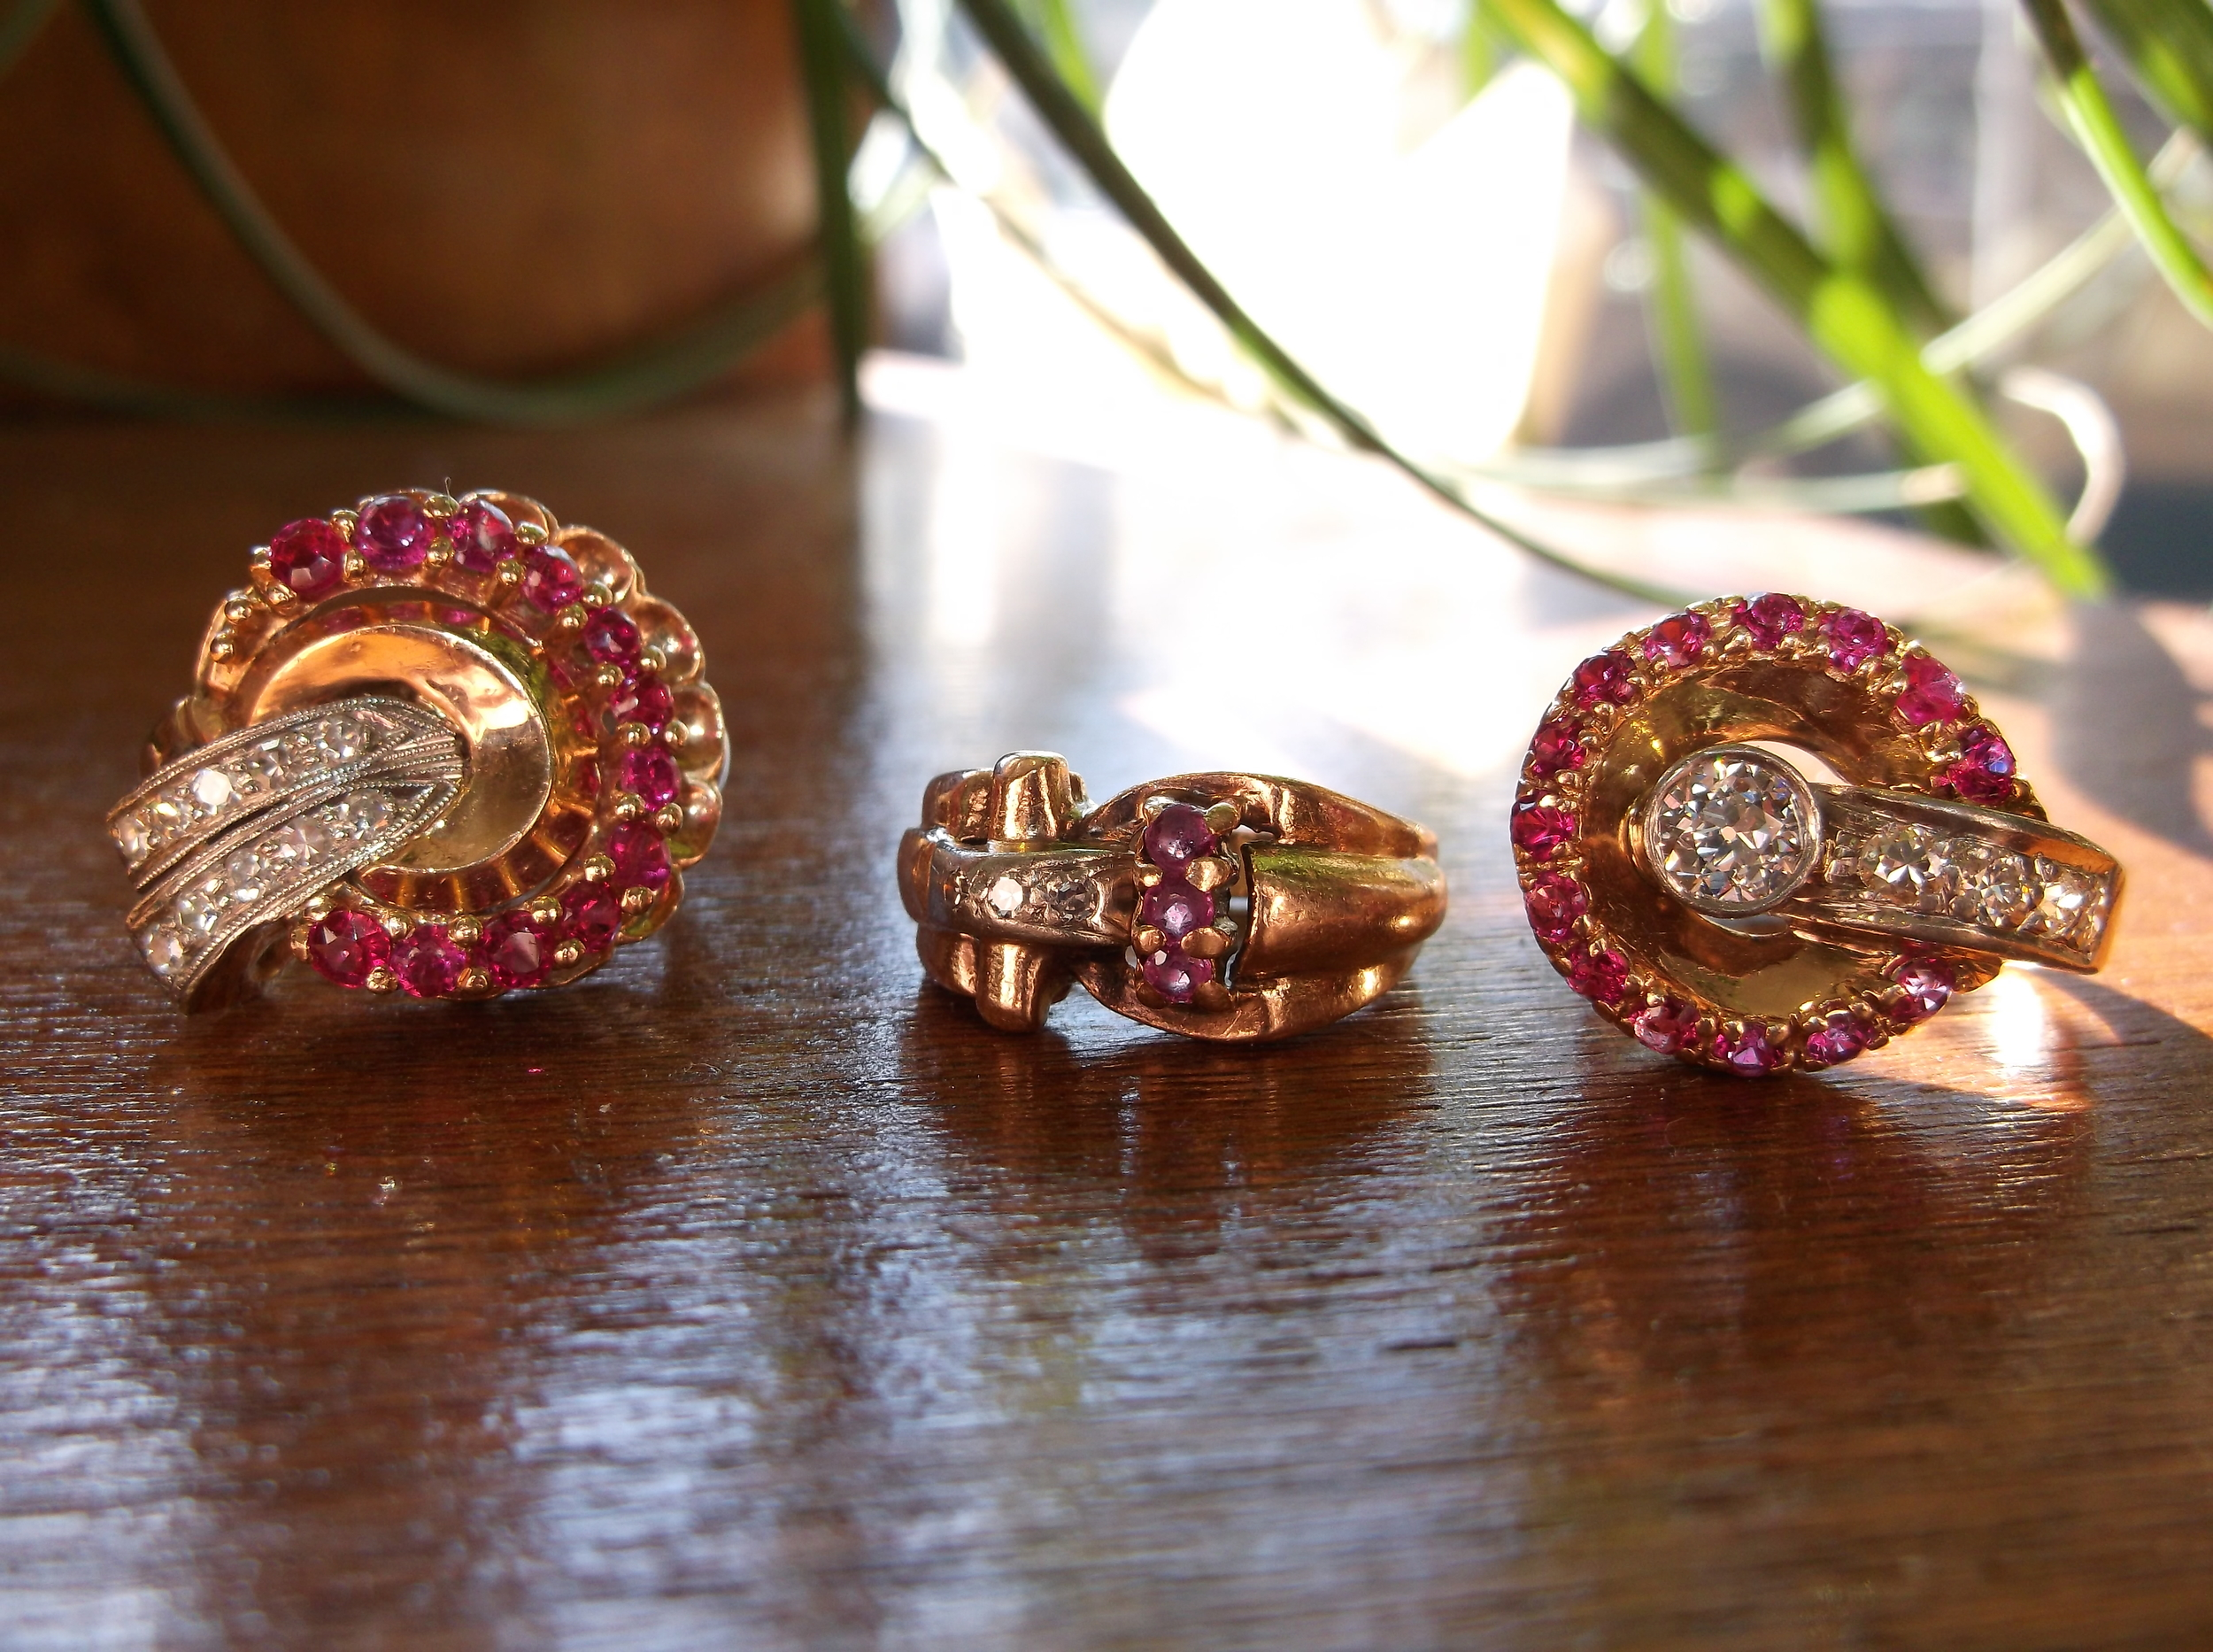 Three regally retro diamond, ruby and yellow gold rings! From left to right: SOLD - 1940's circular diamond and synthetic ruby ring in 14K yellow gold, SOLD - 1940's dainty diamond and ruby ring in 10K yellow gold, SOLD - 1940's diamond and ruby ring set in 14K yellow gold with a 0.45 carat diamond in the center.